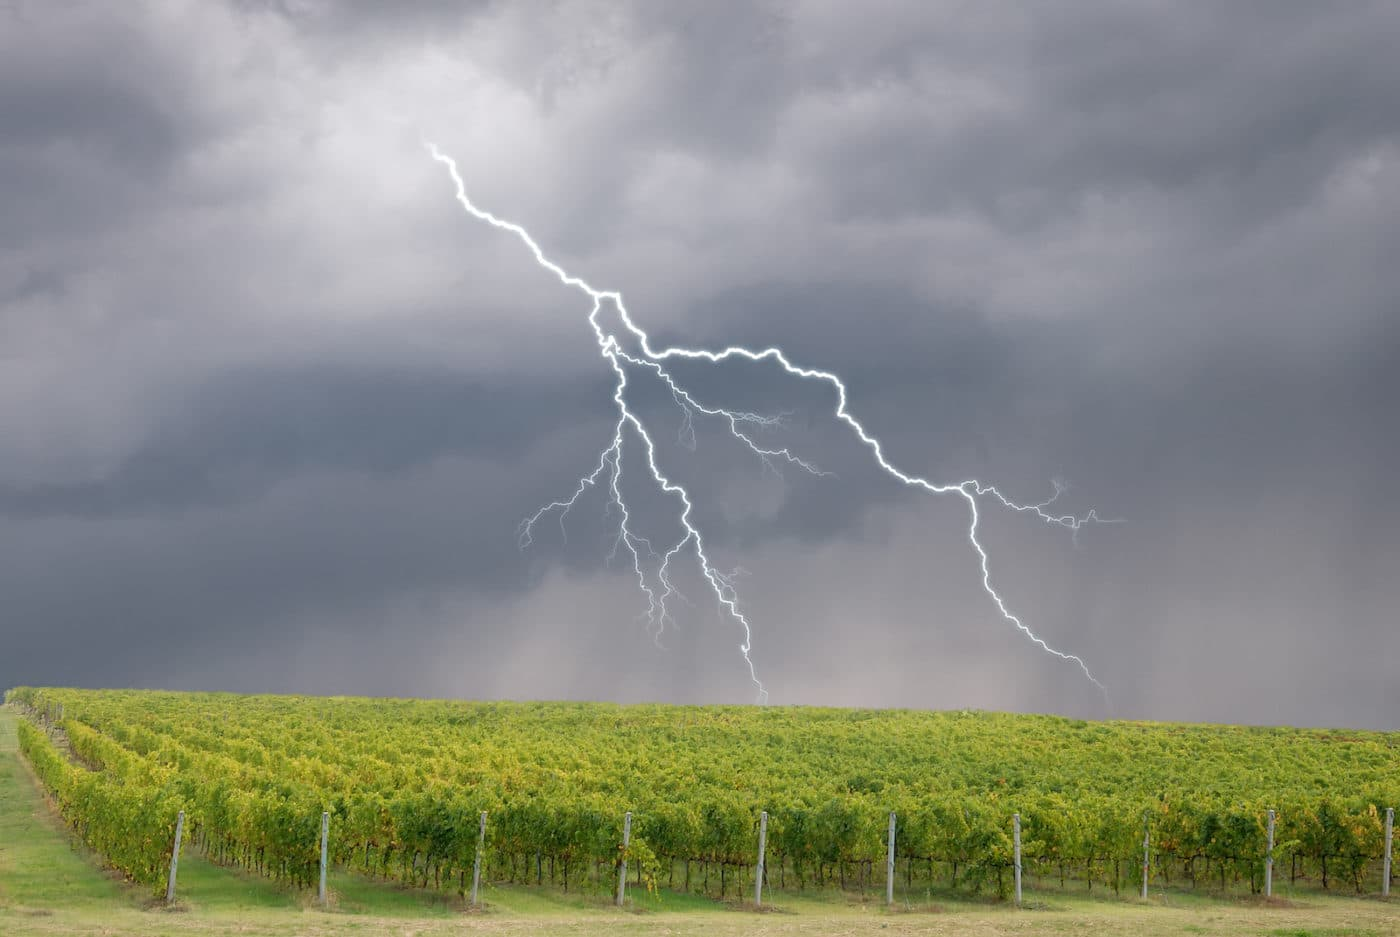 Hail storms in Bordeaux vineyards – reducing the risk with technology